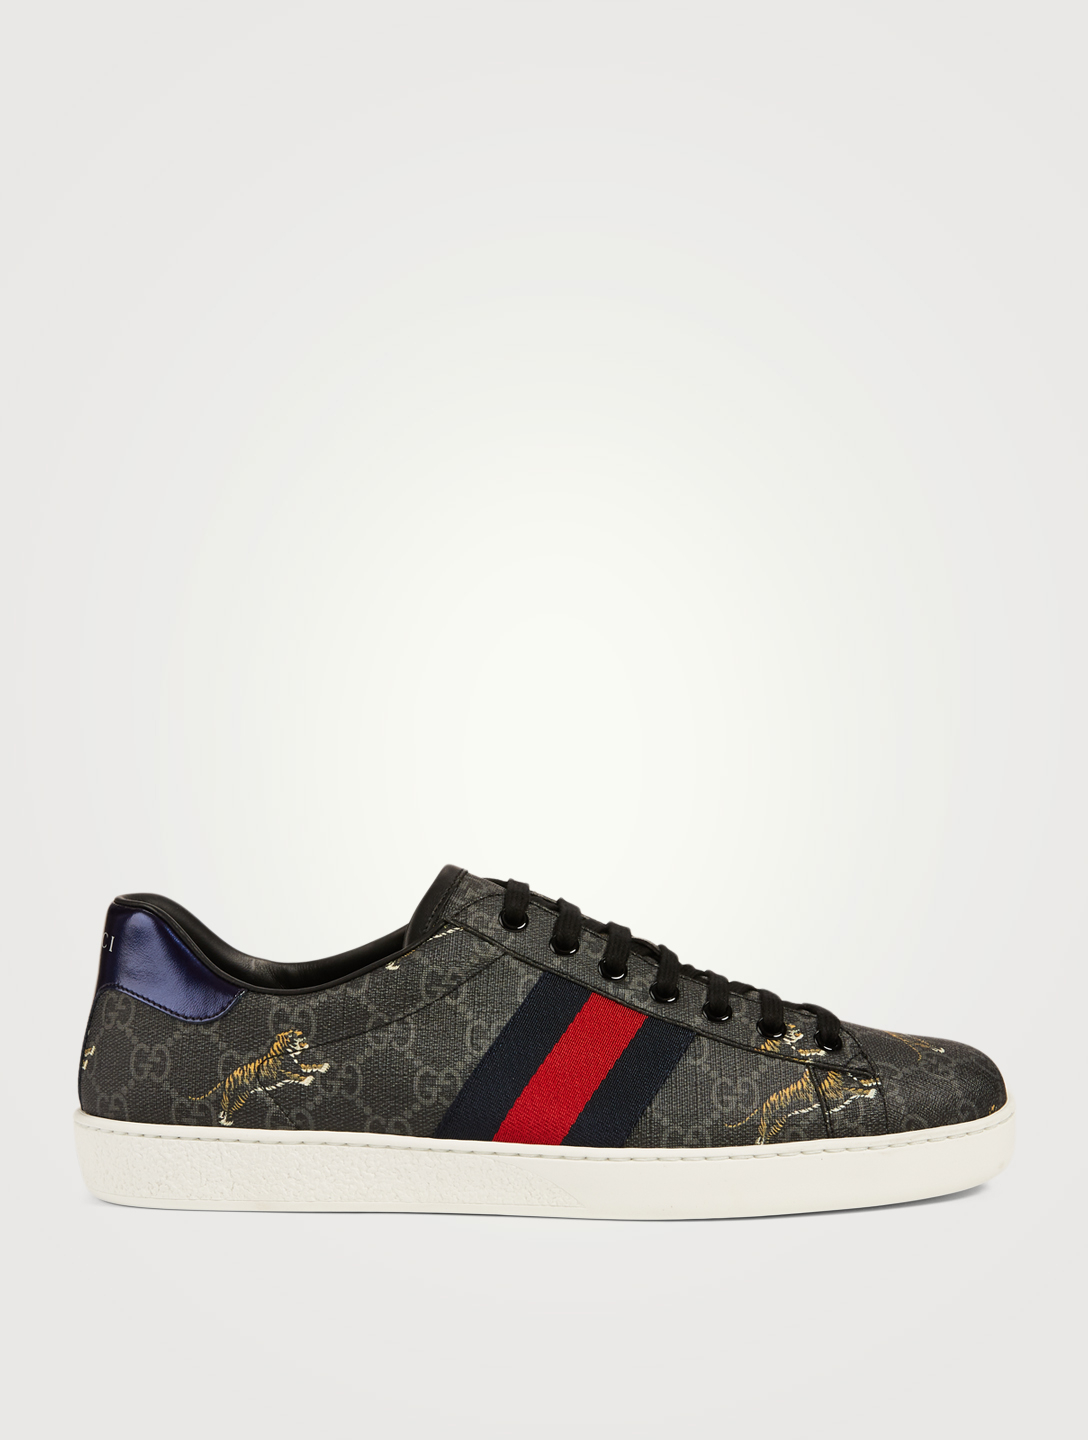 be901888e GUCCI Ace GG Supreme Sneakers With Tigers Men's Black ...